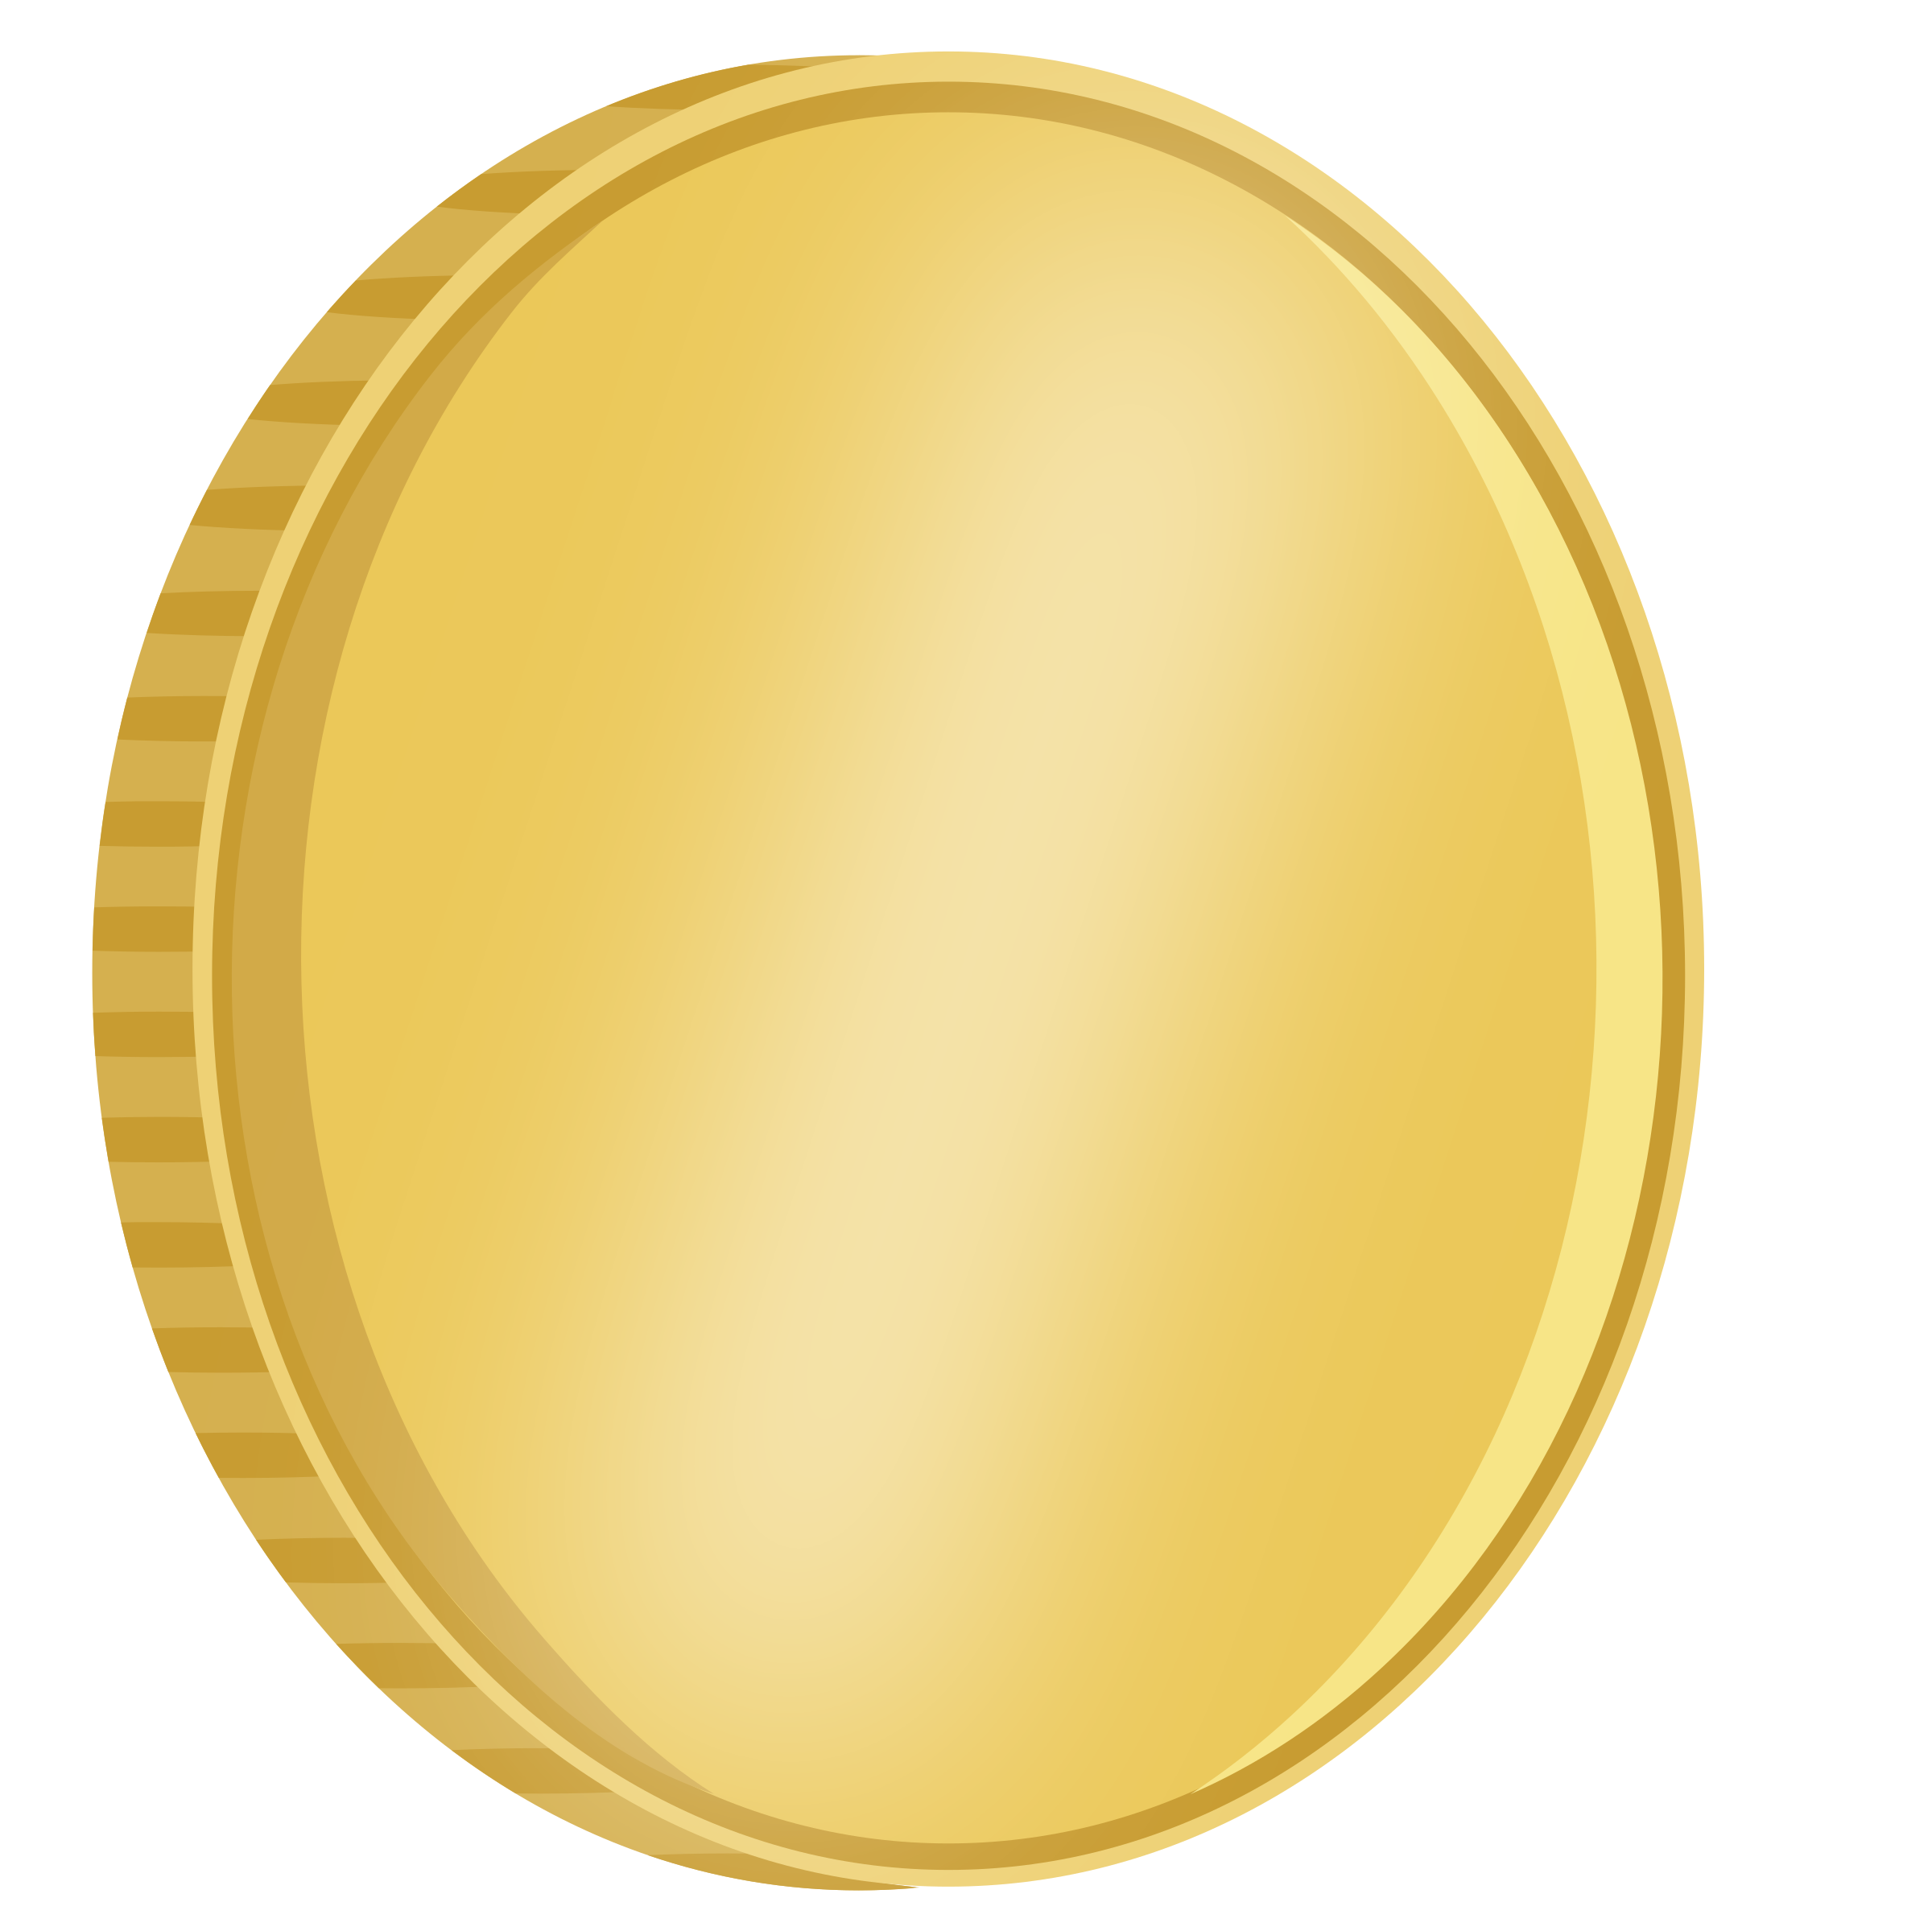 coins money png image  coins png pictures download gold coin clip art black and white gold coin clip art black and white